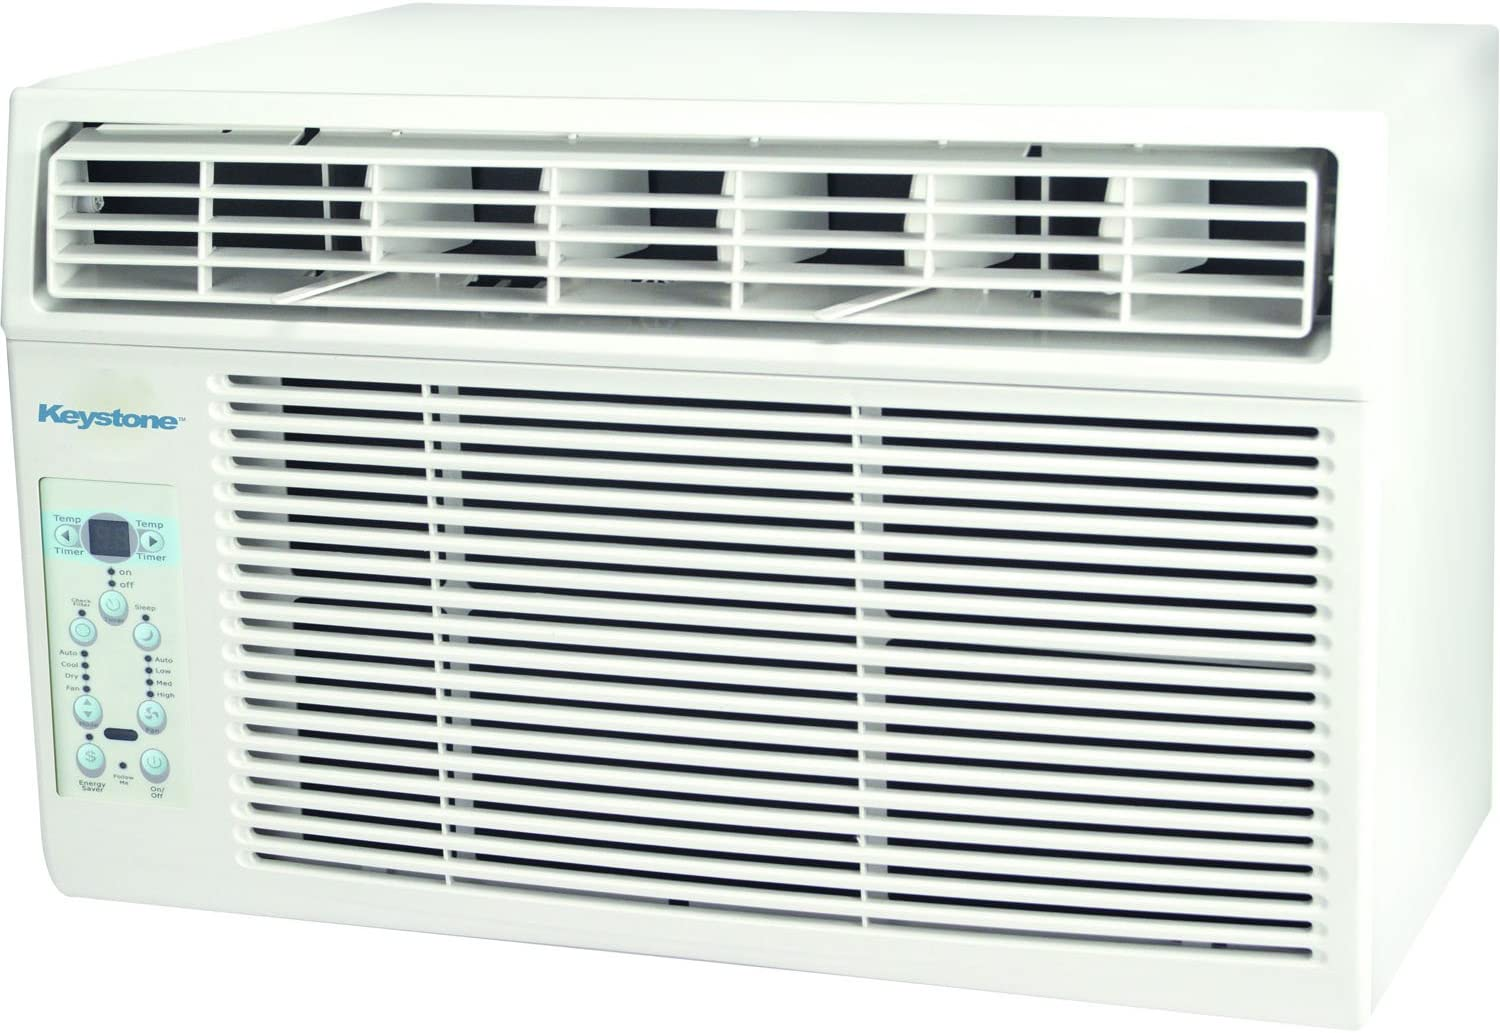 Keystone 10,000 BTU Window-Mounted Air Conditioner with Follow Me LCD Remote Control